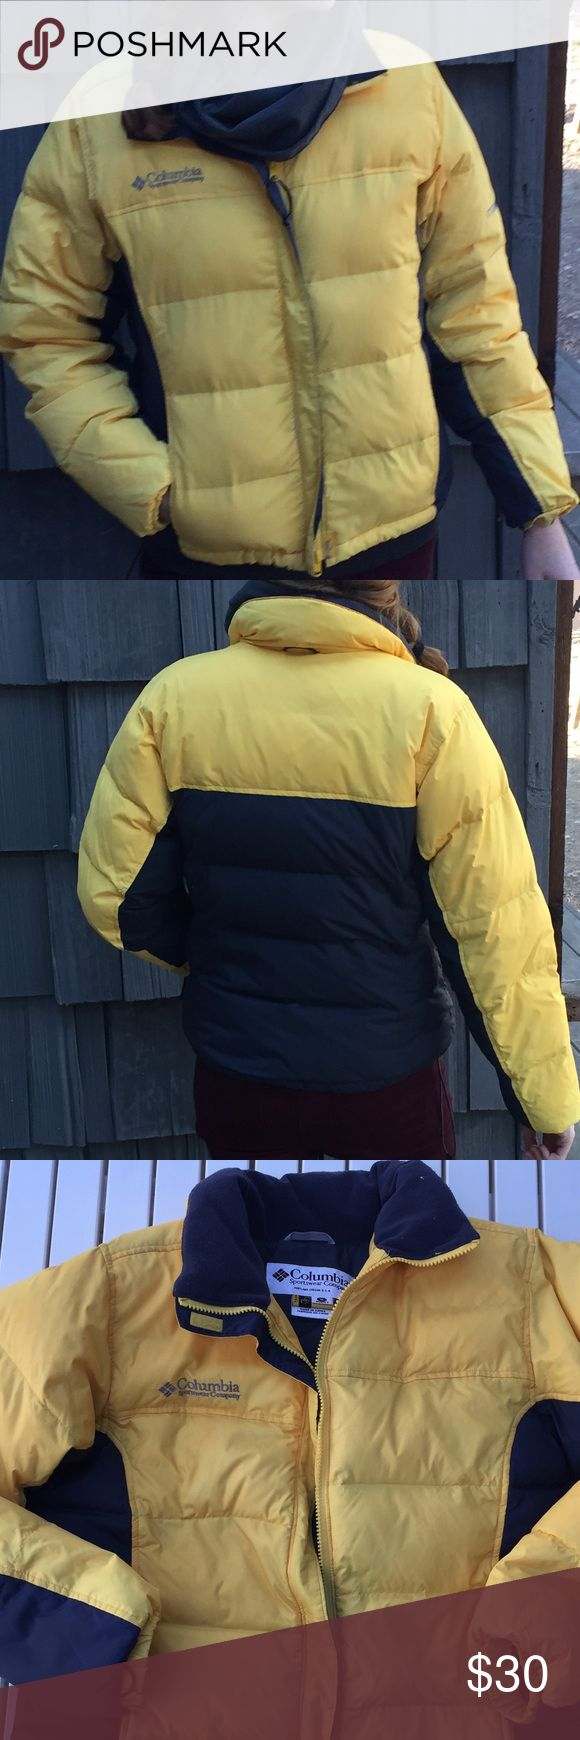 Columbia Titanium down puffer jacket Yellow and bluish /gray Columbia winter jacket, super warm puffer goose down. In excellent used condition, no stains or tears. Columbia Jackets & Coats Puffers